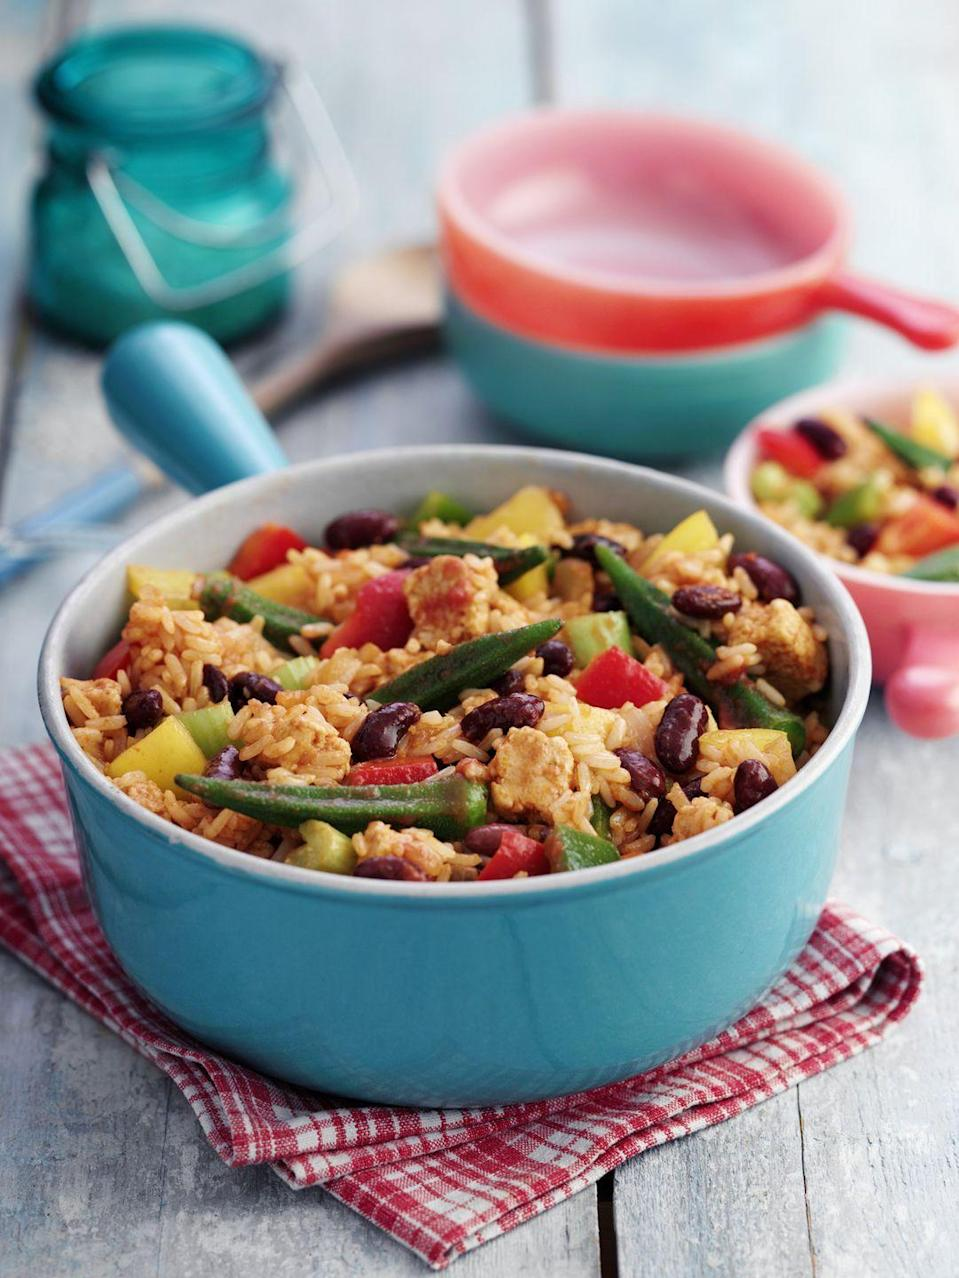 "<p>Make jambalaya by combining 3/4 cup cooked brown rice; 1/2 cup corn; 2 ounces cooked turkey sausage, sliced; 1/3 cup salsa; and 1/4 cup <a href=""https://www.goodhousekeeping.com/health/diet-nutrition/g5147/healthy-canned-foods/"" rel=""nofollow noopener"" target=""_blank"" data-ylk=""slk:no-salt-added black or navy beans"" class=""link rapid-noclick-resp"">no-salt-added black or navy beans</a>. Heat through. Eat with 3 cups spinach sautéed with garlic in 1 tablespoon olive oil.</p><p><strong>RELATED: <a href=""https://www.goodhousekeeping.com/health/diet-nutrition/g5147/healthy-canned-foods/"" rel=""nofollow noopener"" target=""_blank"" data-ylk=""slk:30 Healthy Canned Foods You Should Add to Your Pantry"" class=""link rapid-noclick-resp"">30 Healthy Canned Foods You Should Add to Your Pantry</a></strong></p>"